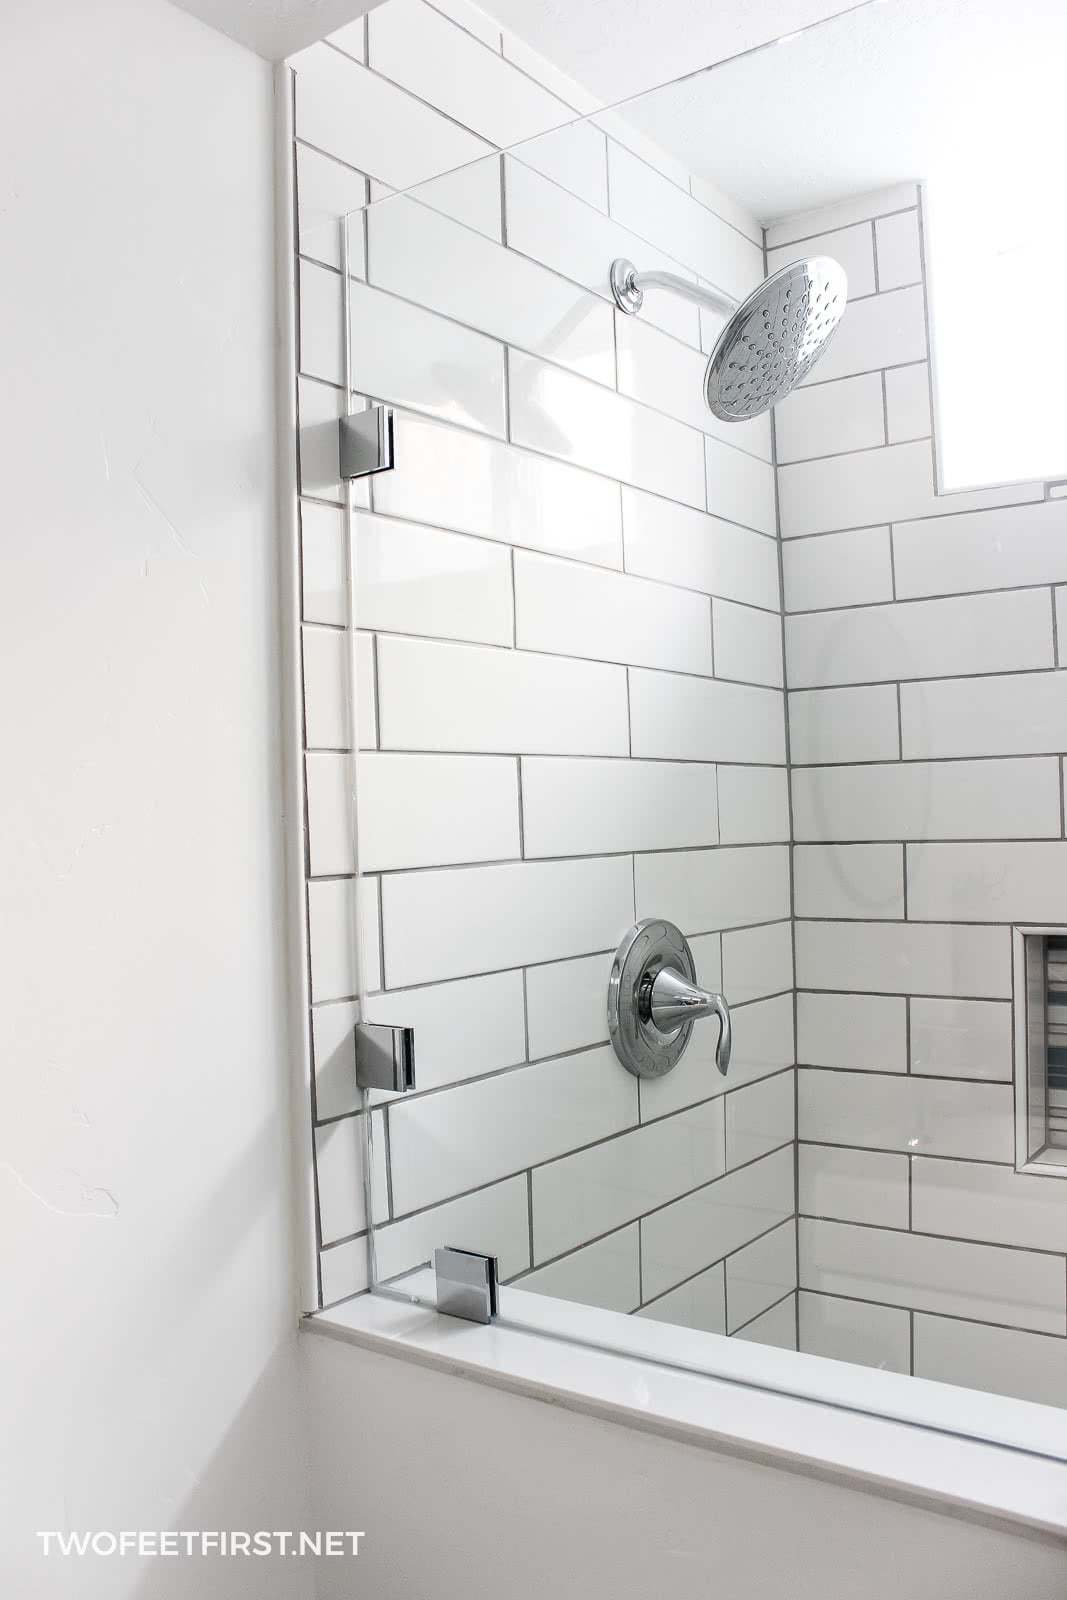 my experience tiling a shower for the